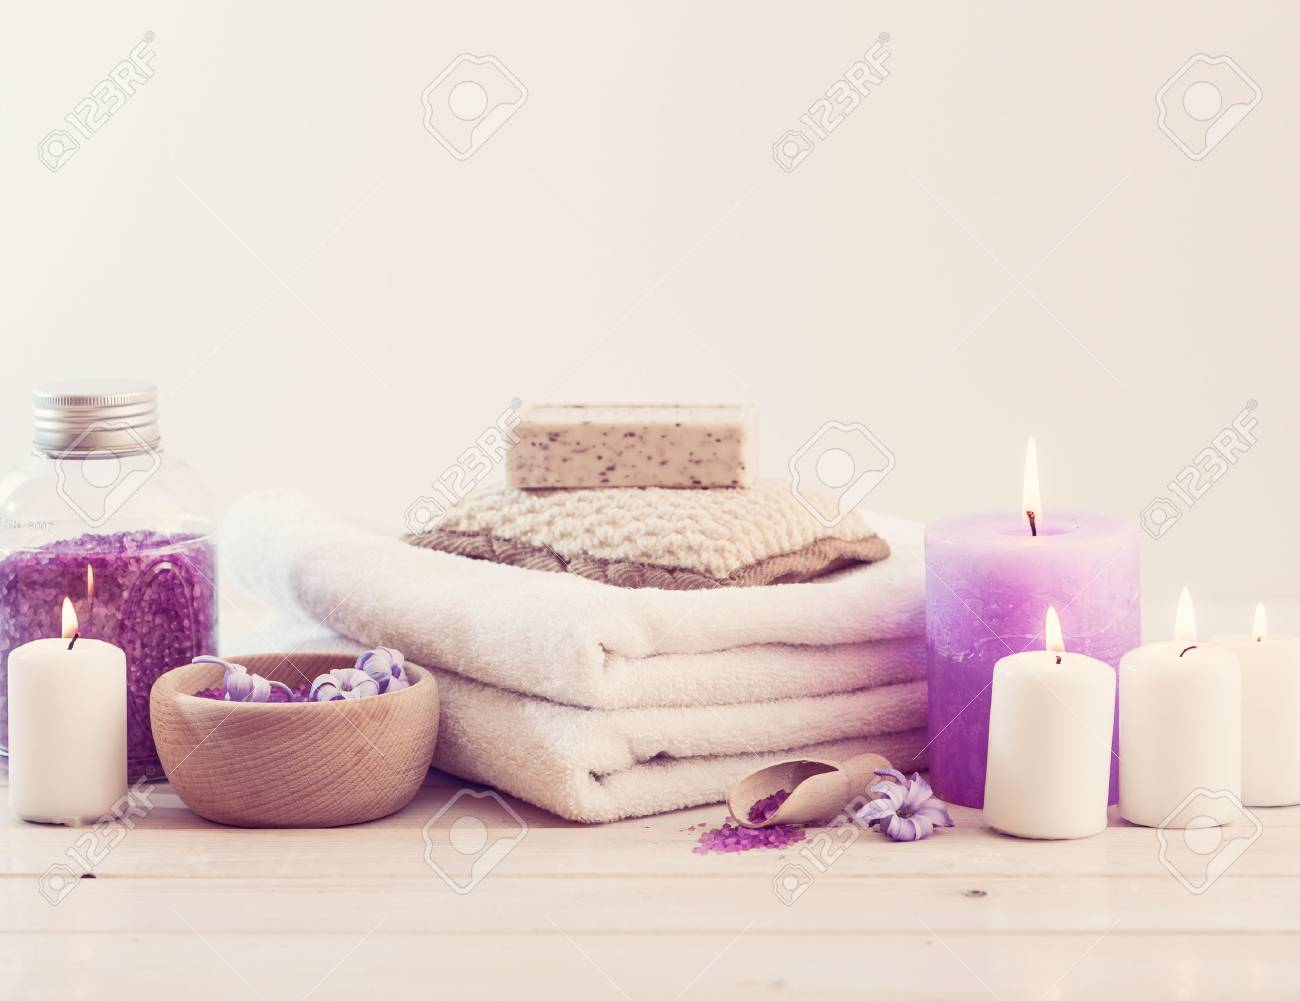 Composition of spa treatment on the white wooden table Stock Photo - 38491735